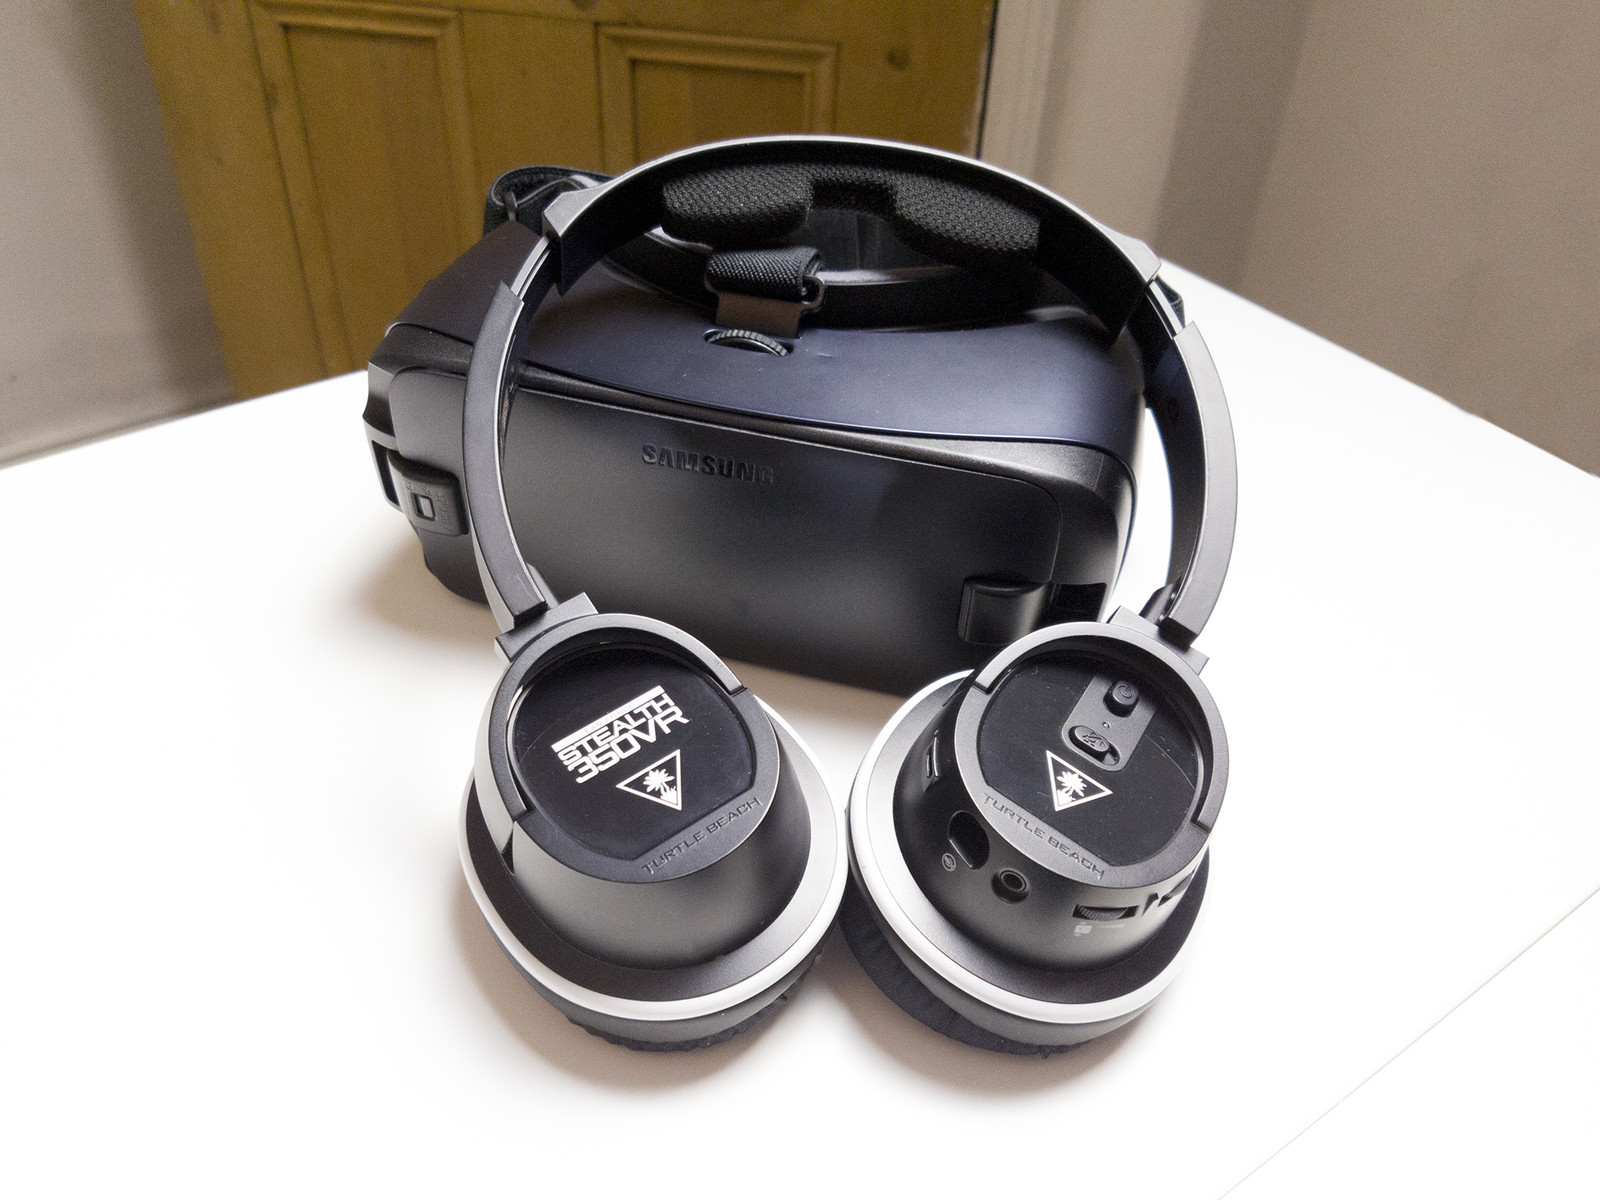 f43a7edf748 The Turtle Beach Stealth 350VR is a great starting point for VR ...